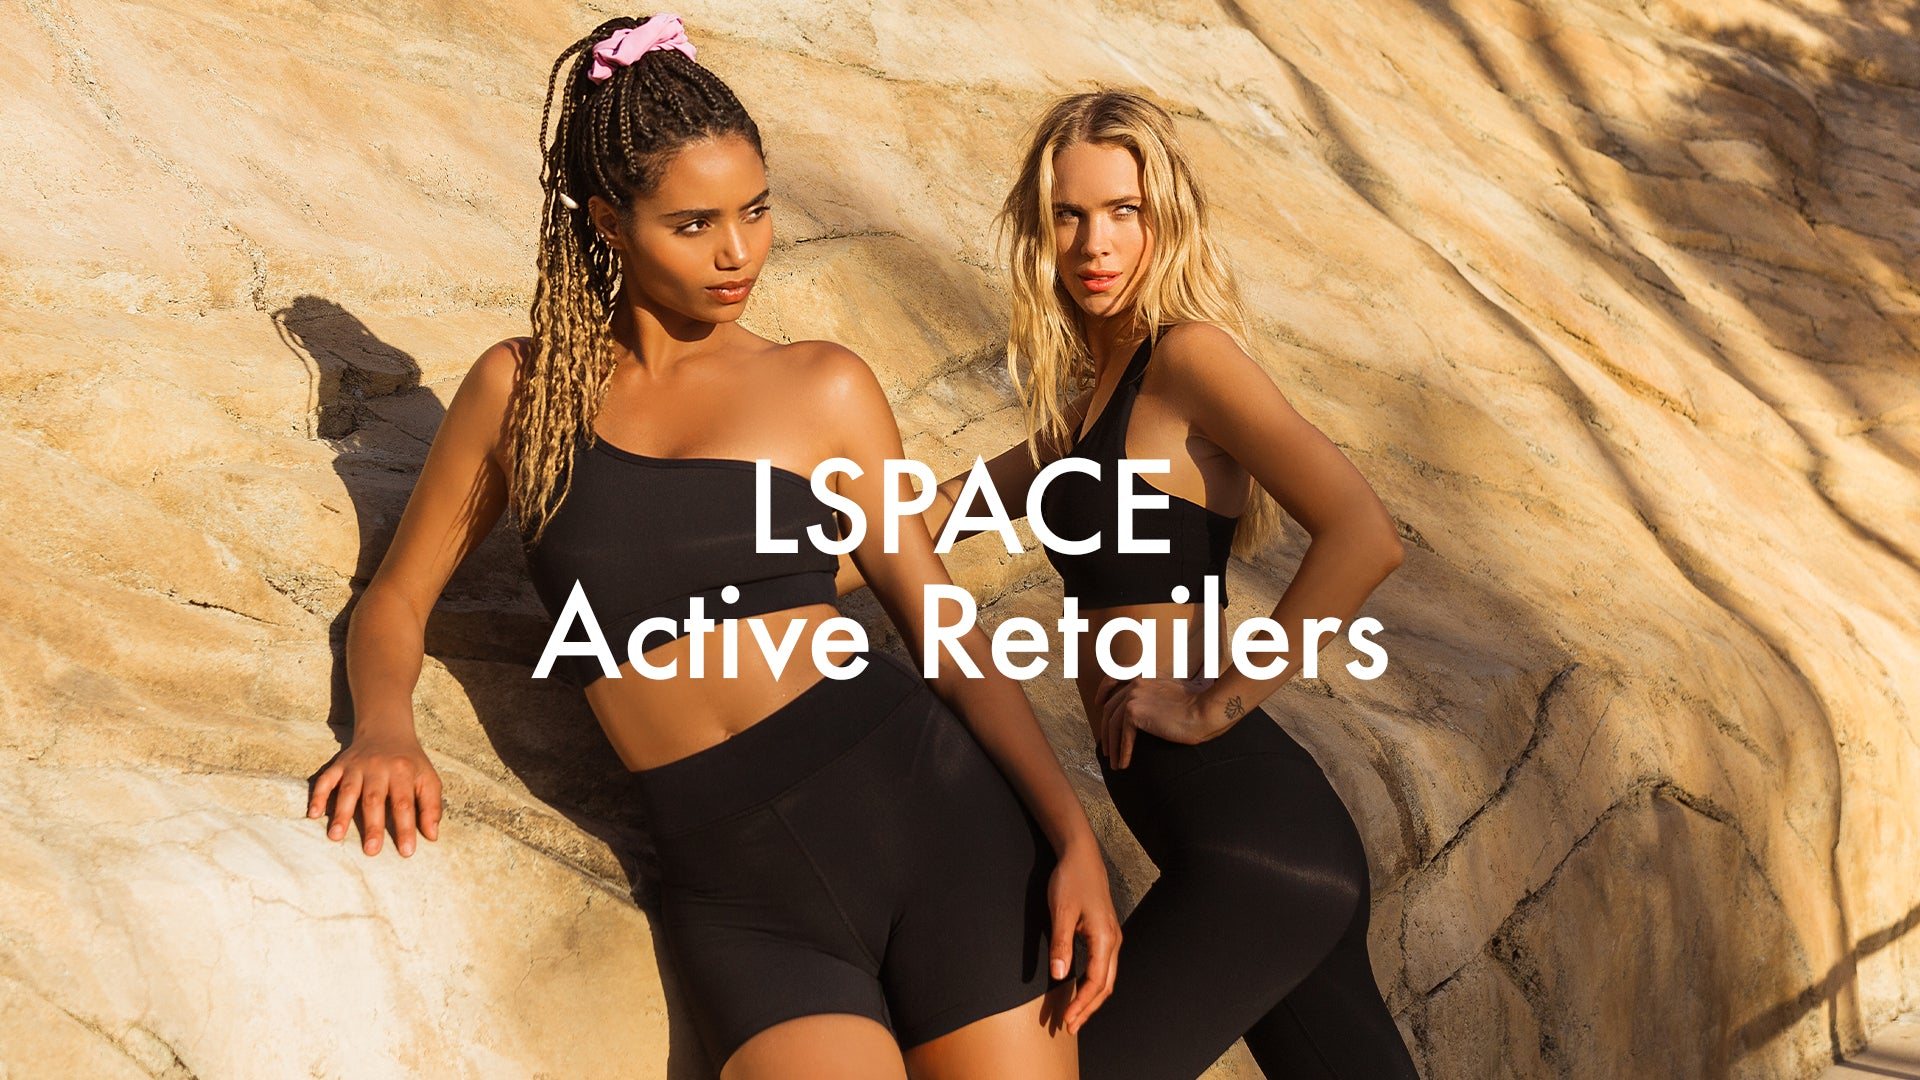 Ative retailers blog cover LSPACE Active Retailers